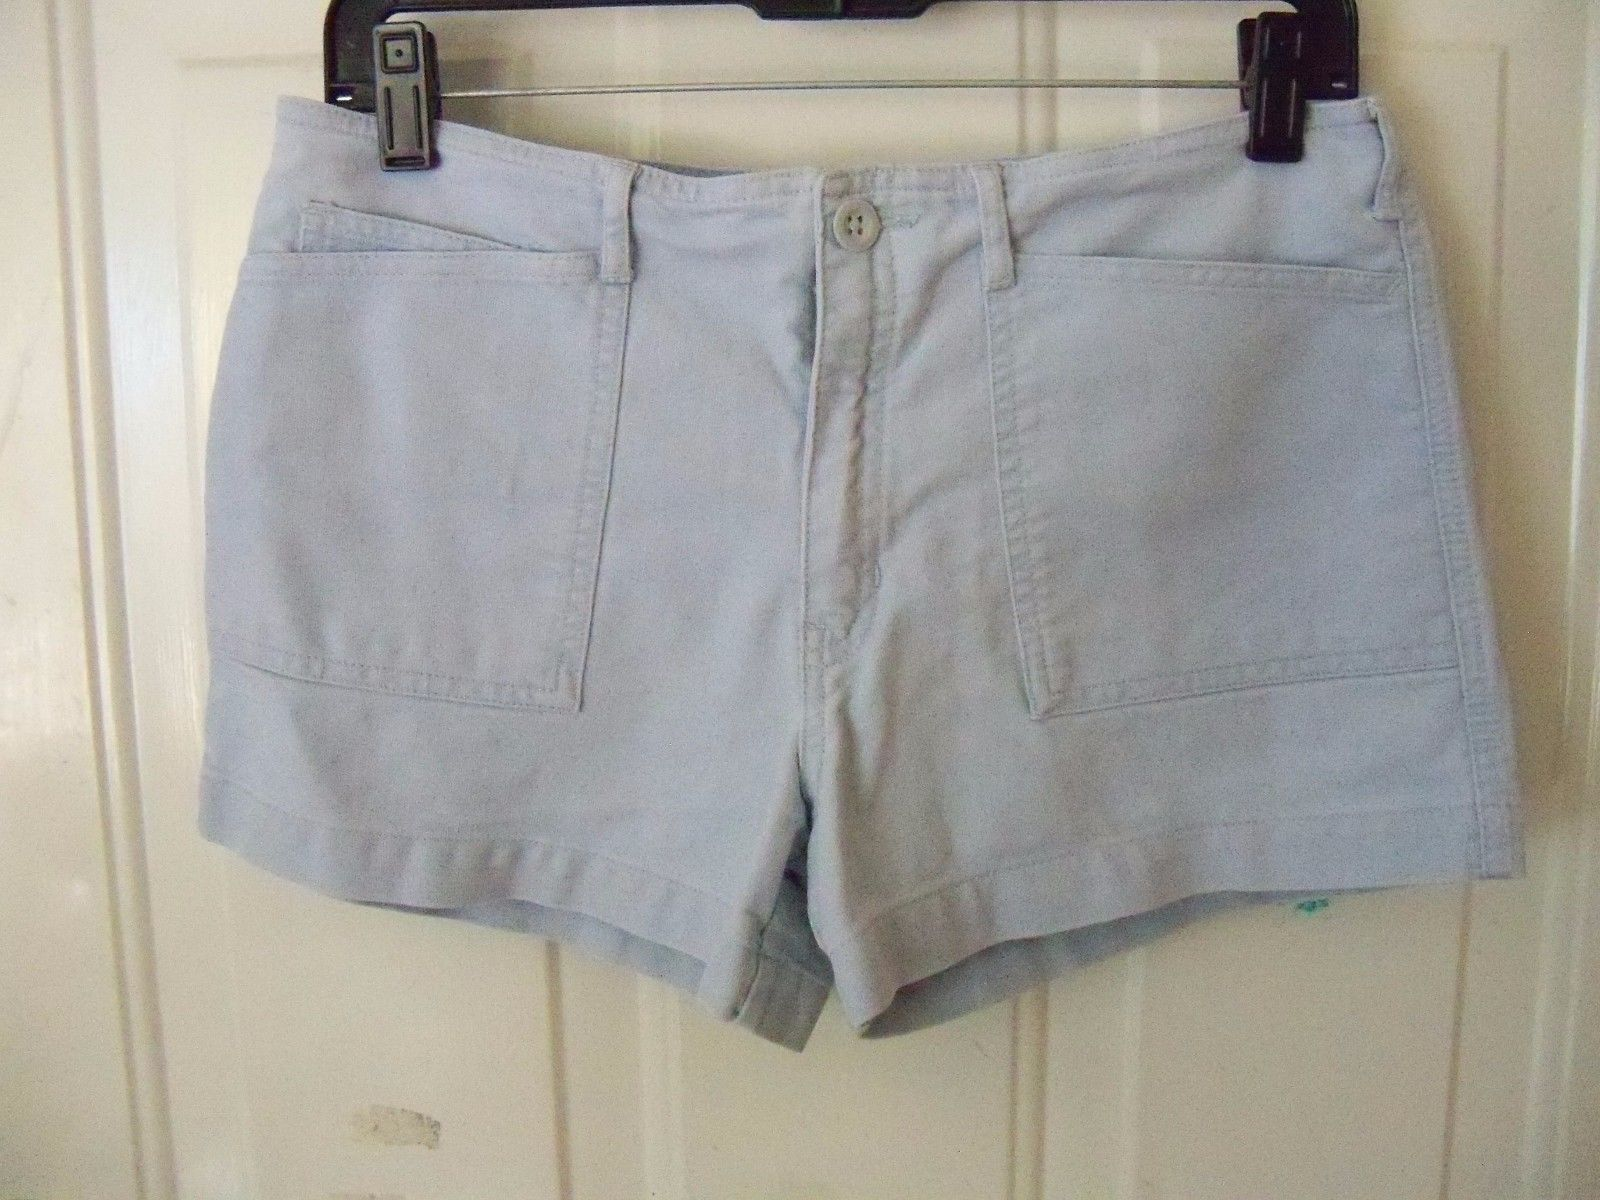 Primary image for Abercrombie Light Blue Shorts Size 16 Women's EUC